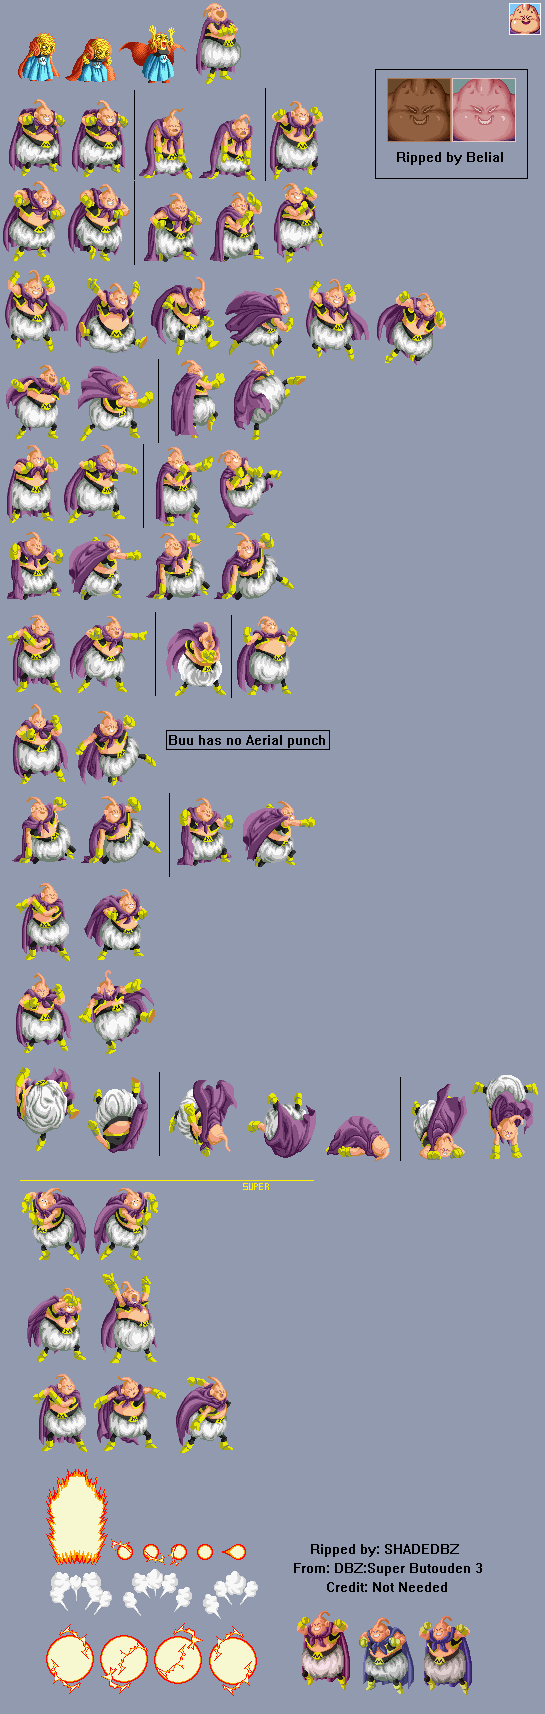 Dbz Snes Sprites Pictures To Pin On Pinterest Pinsdaddy